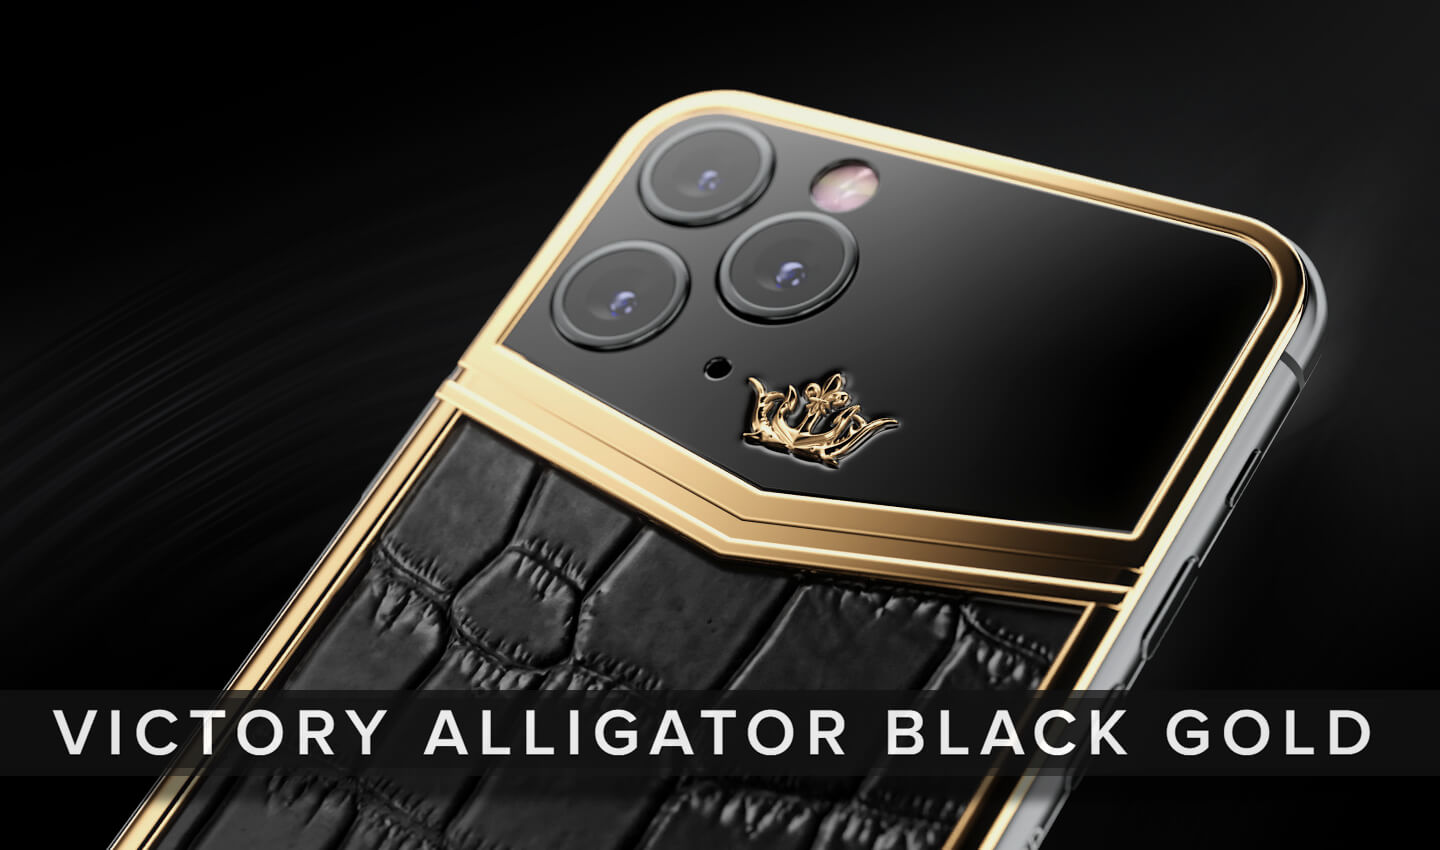 Smartphone with gold accents